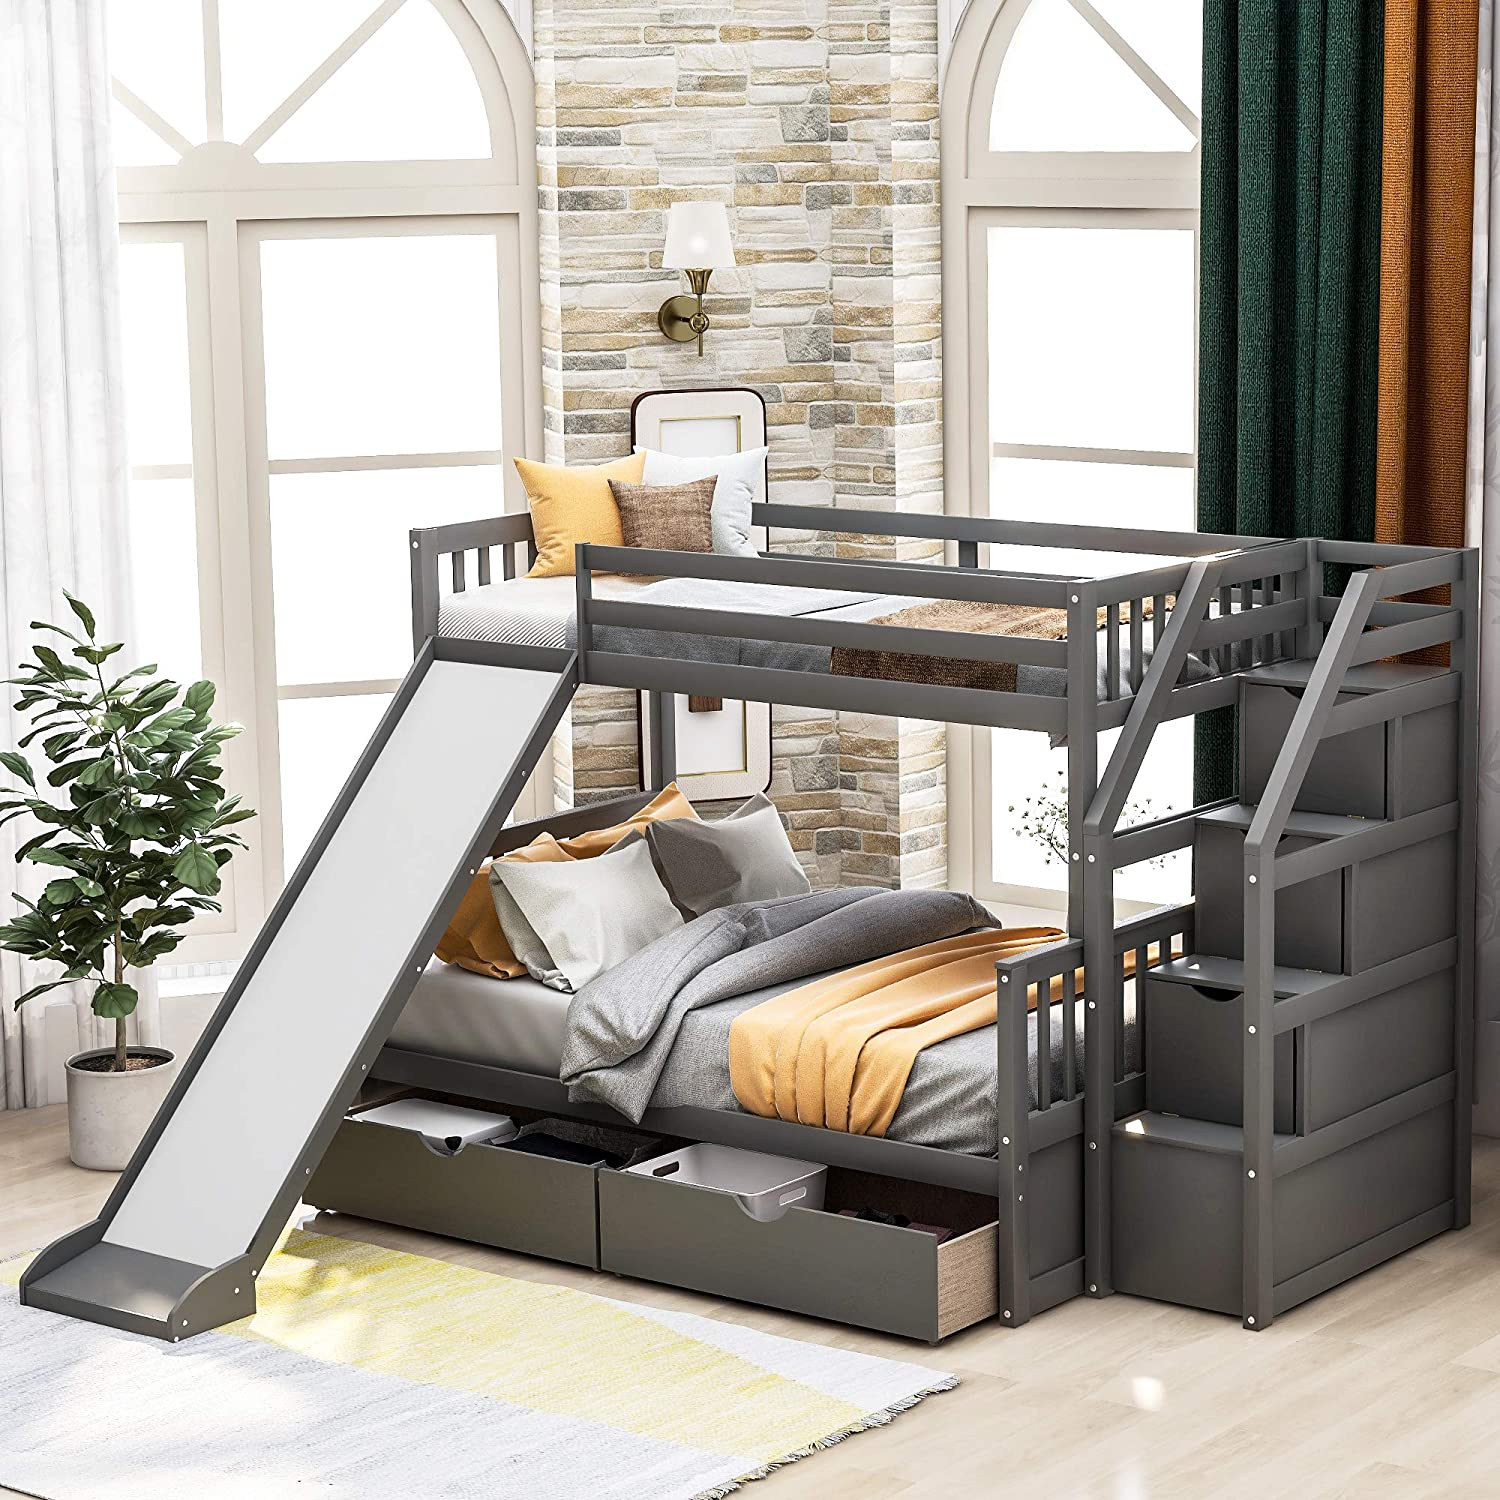 Buy Twin Over Full Bunk Bed With Slides For Kids And Teenagers Solid Wood Bunk Bed Frame With Drawers And Storage No Box Spring Needed Grey Online In Vietnam B08dcrh5m4